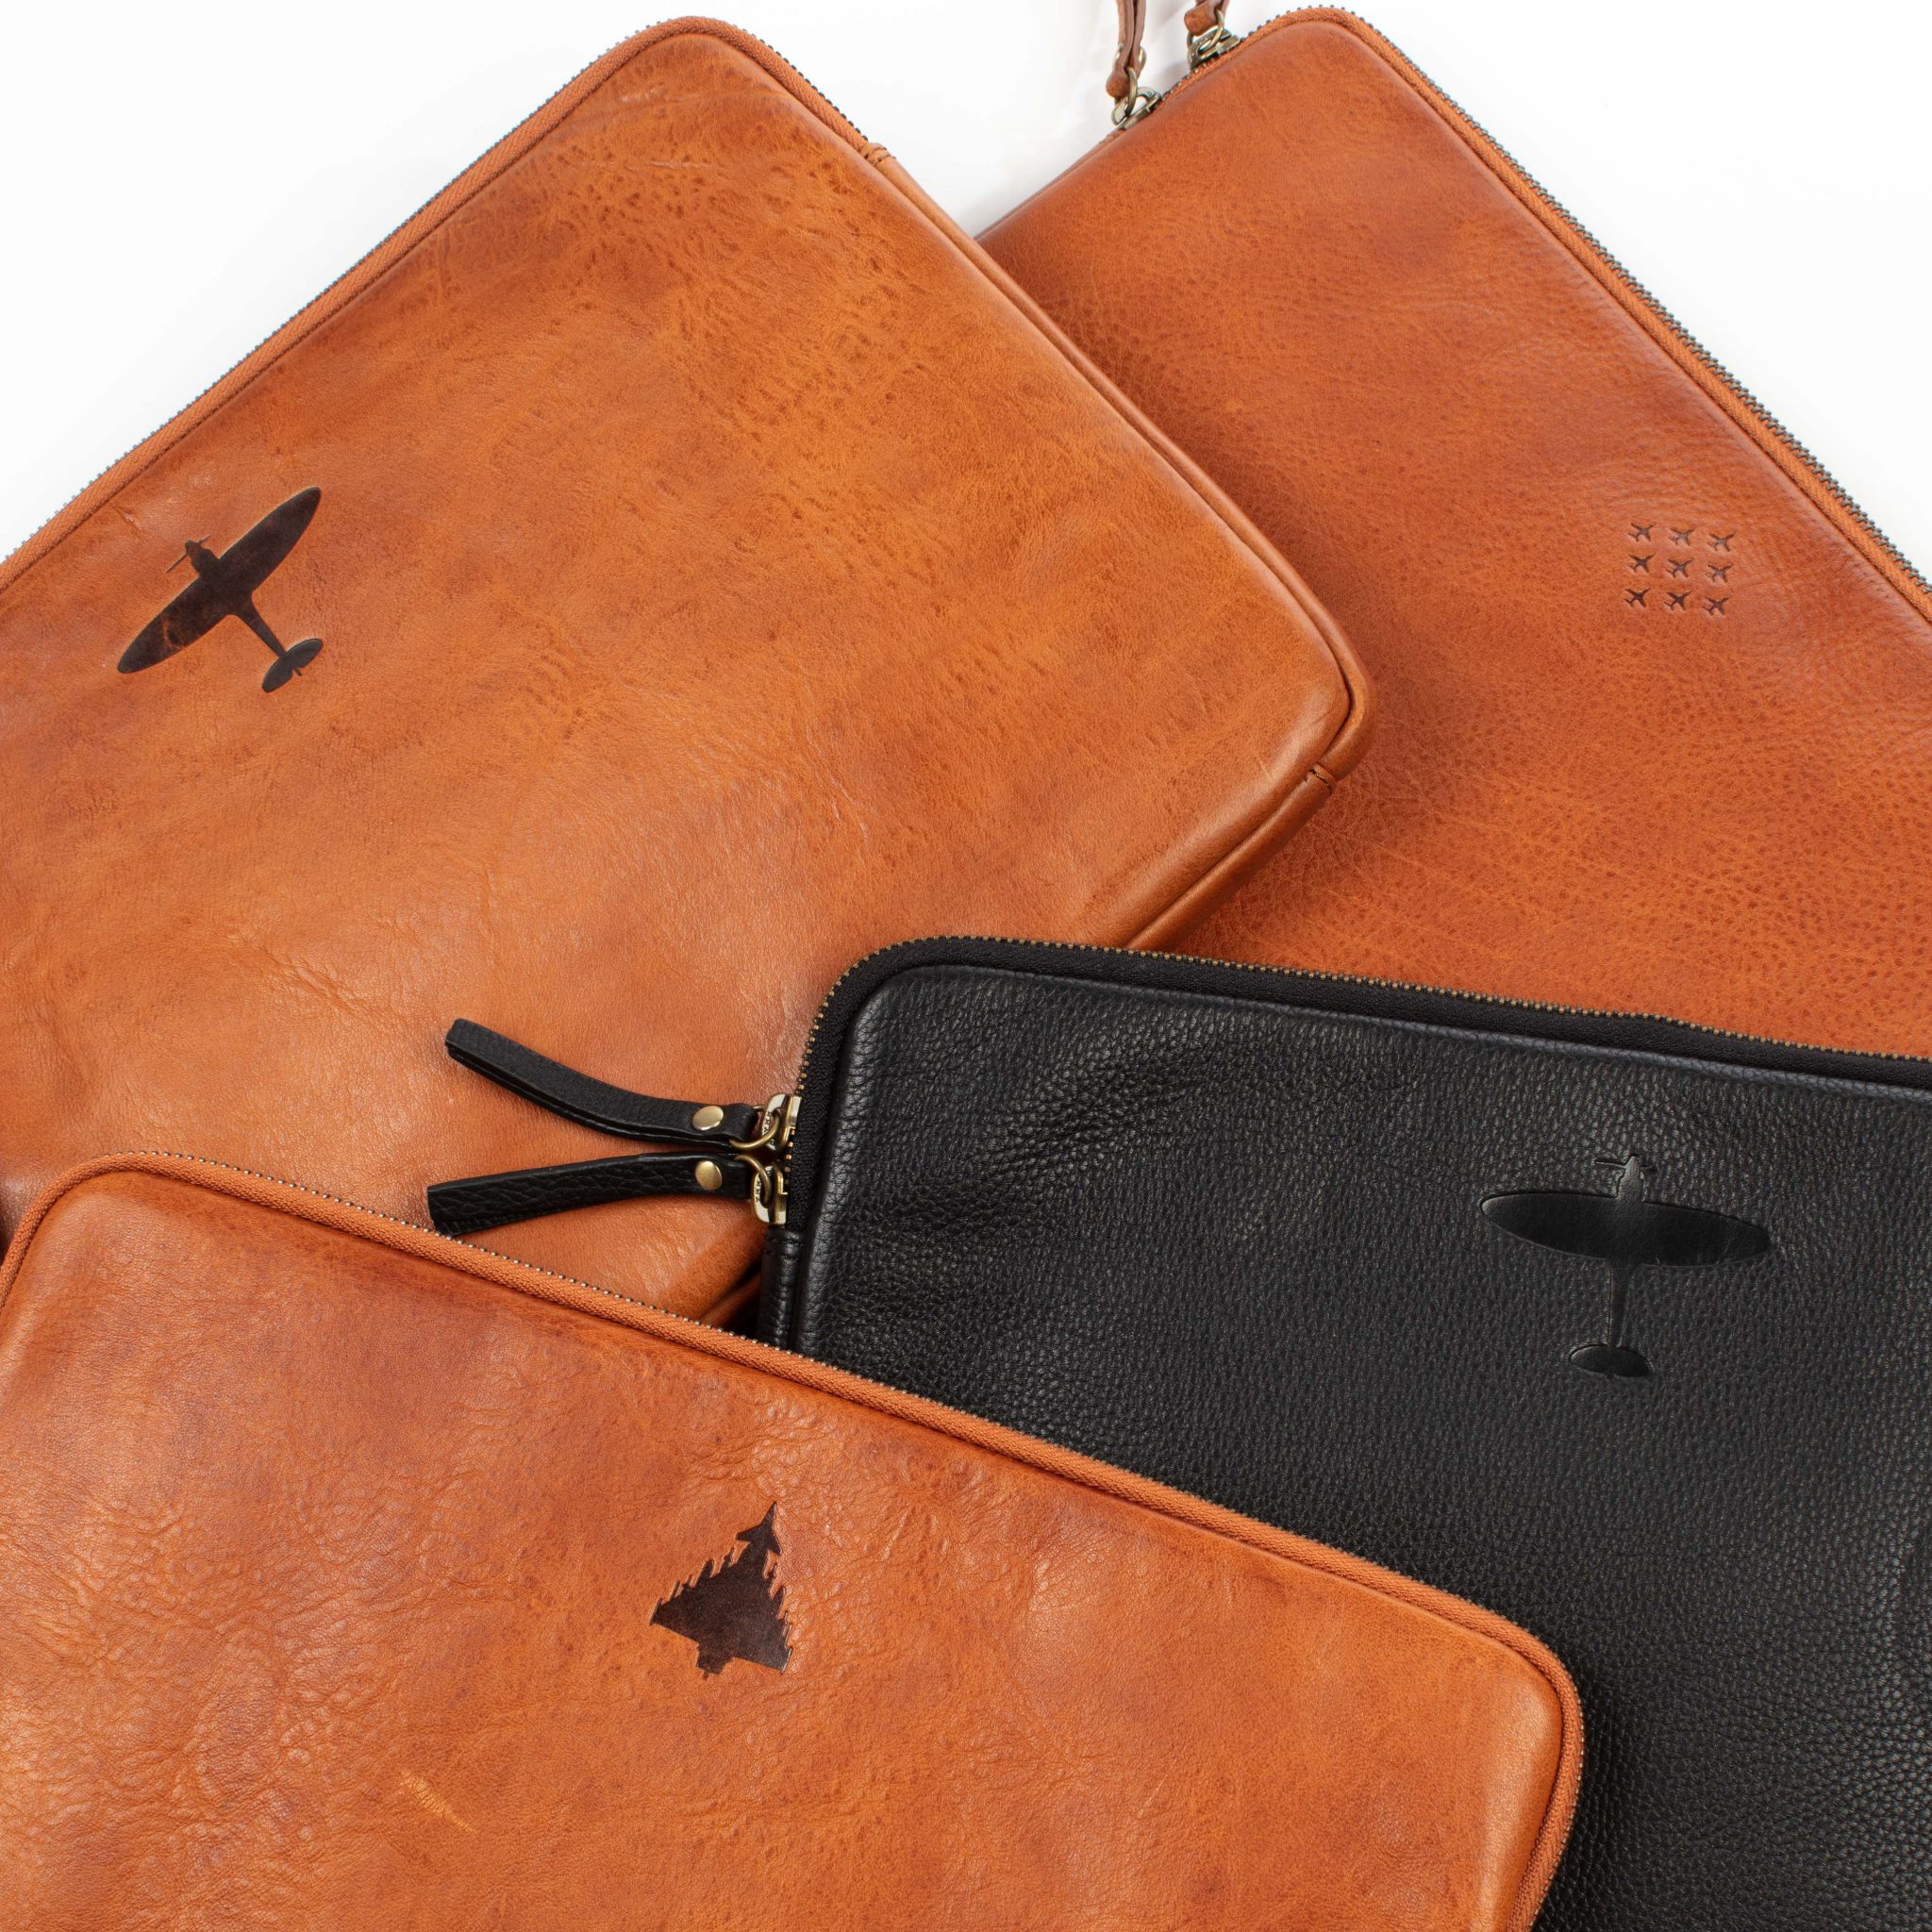 asali leather laptop sleeves typhoon spitfire red arrows